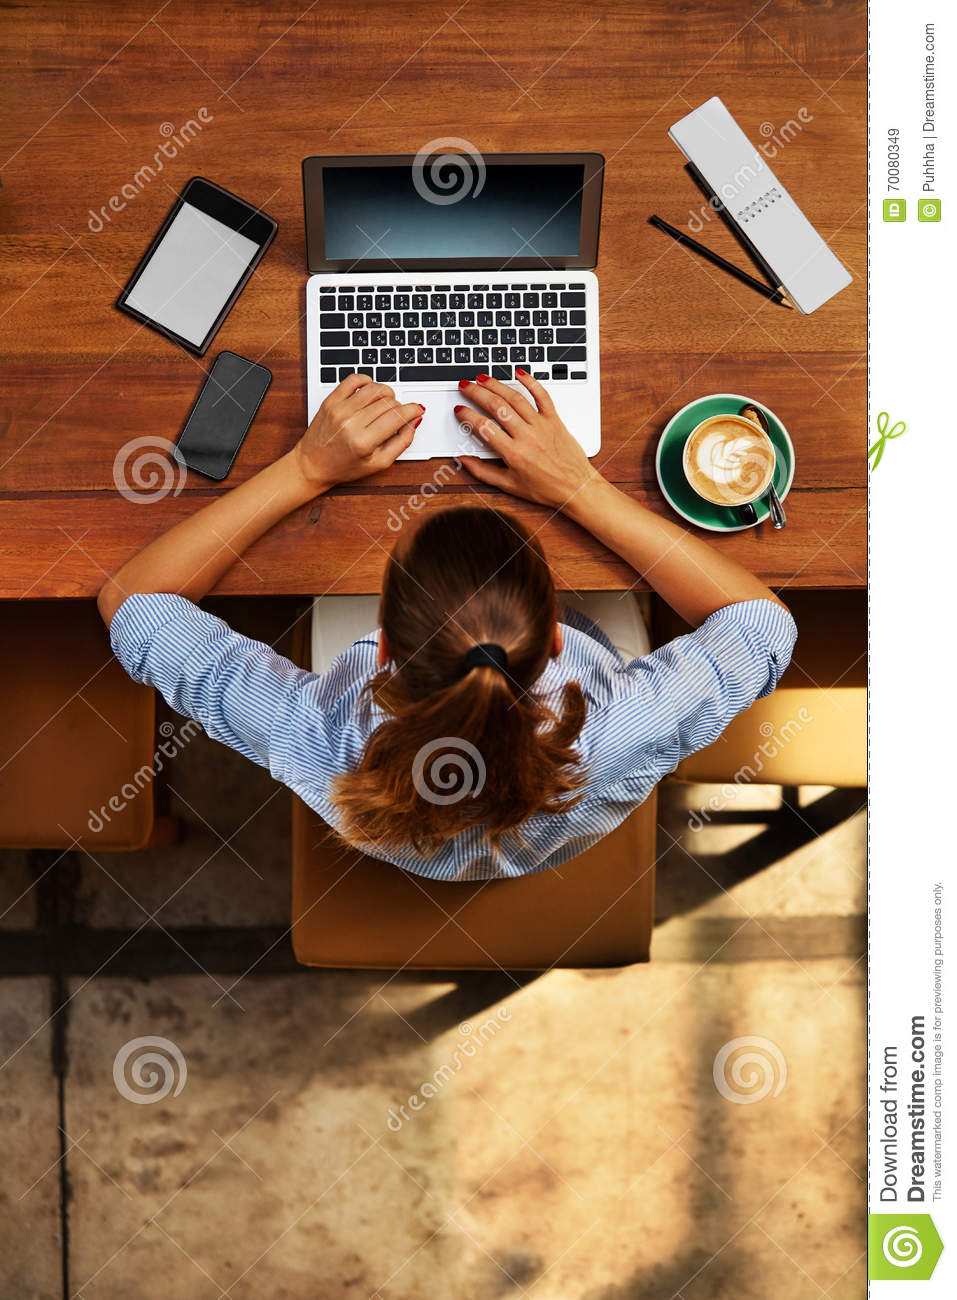 Computer Work. Business Woman Working At Cafe. Freelance, Communication